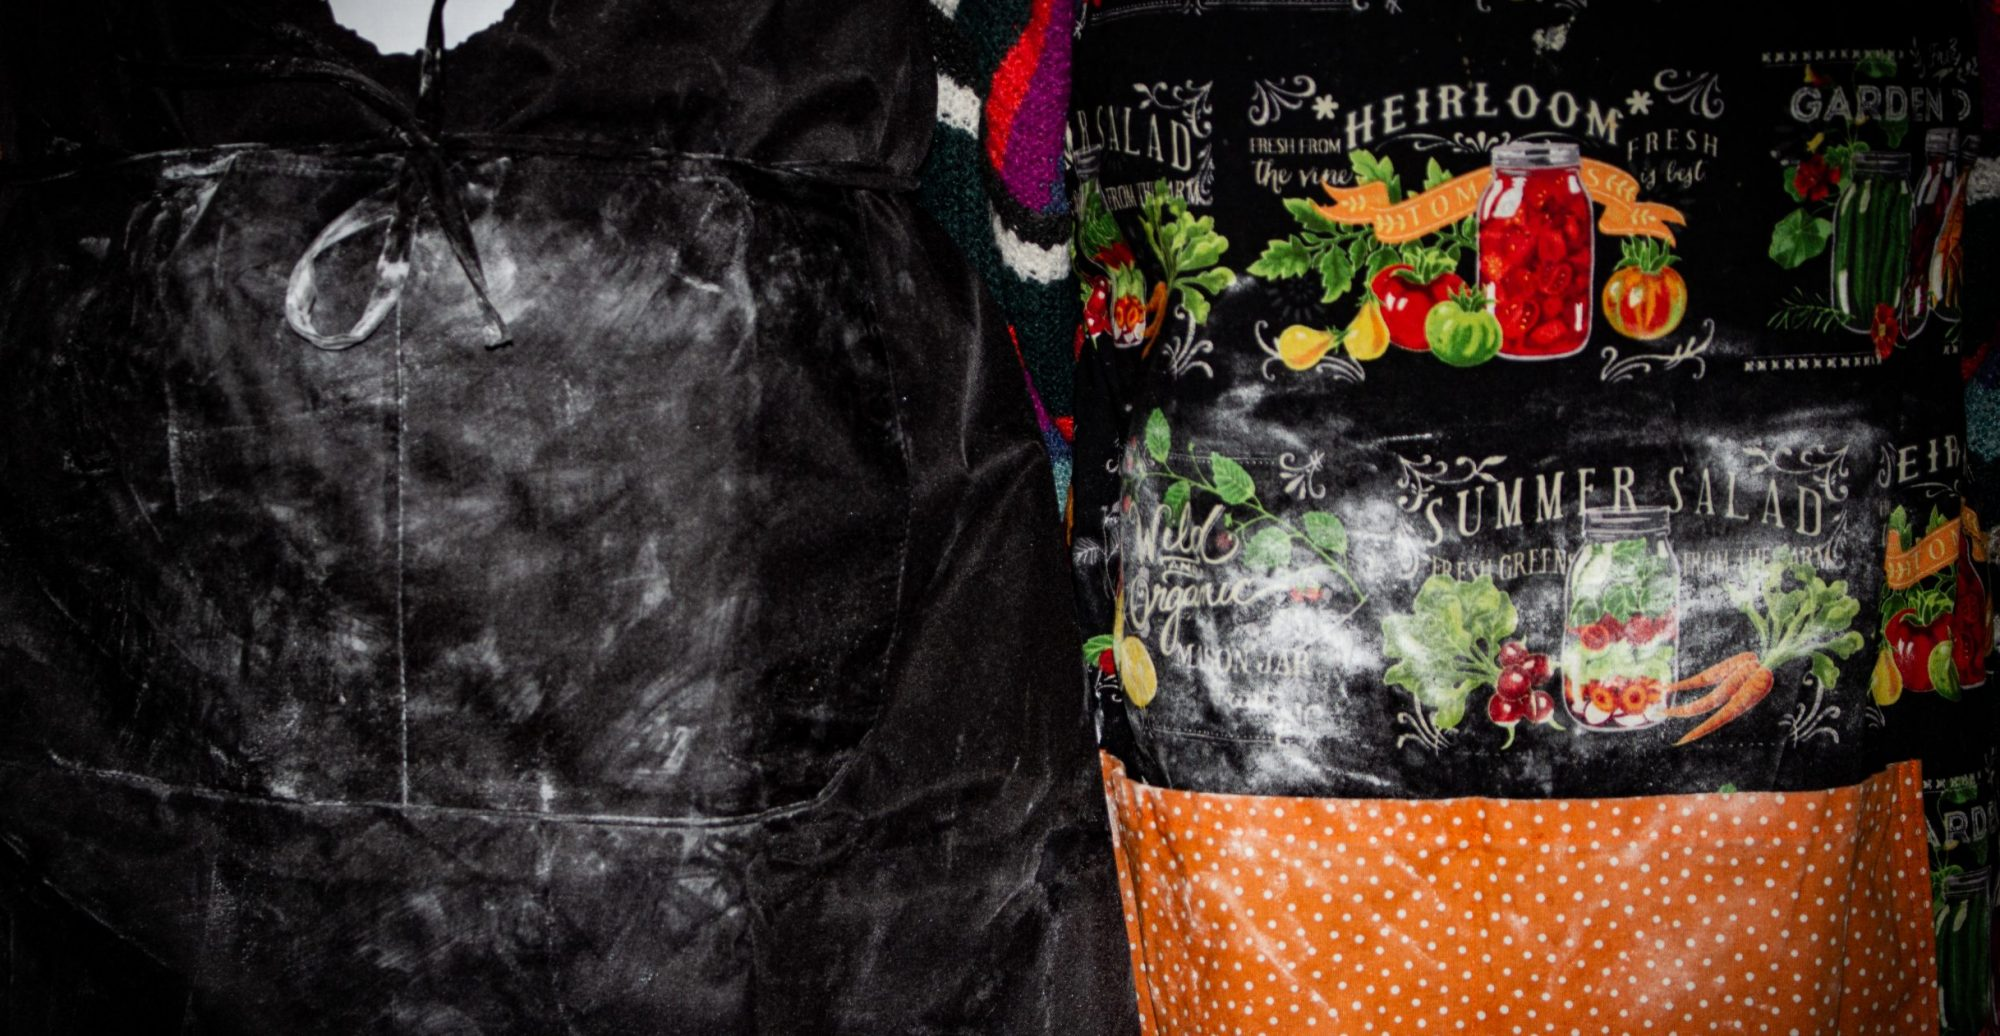 The Messy Aprons